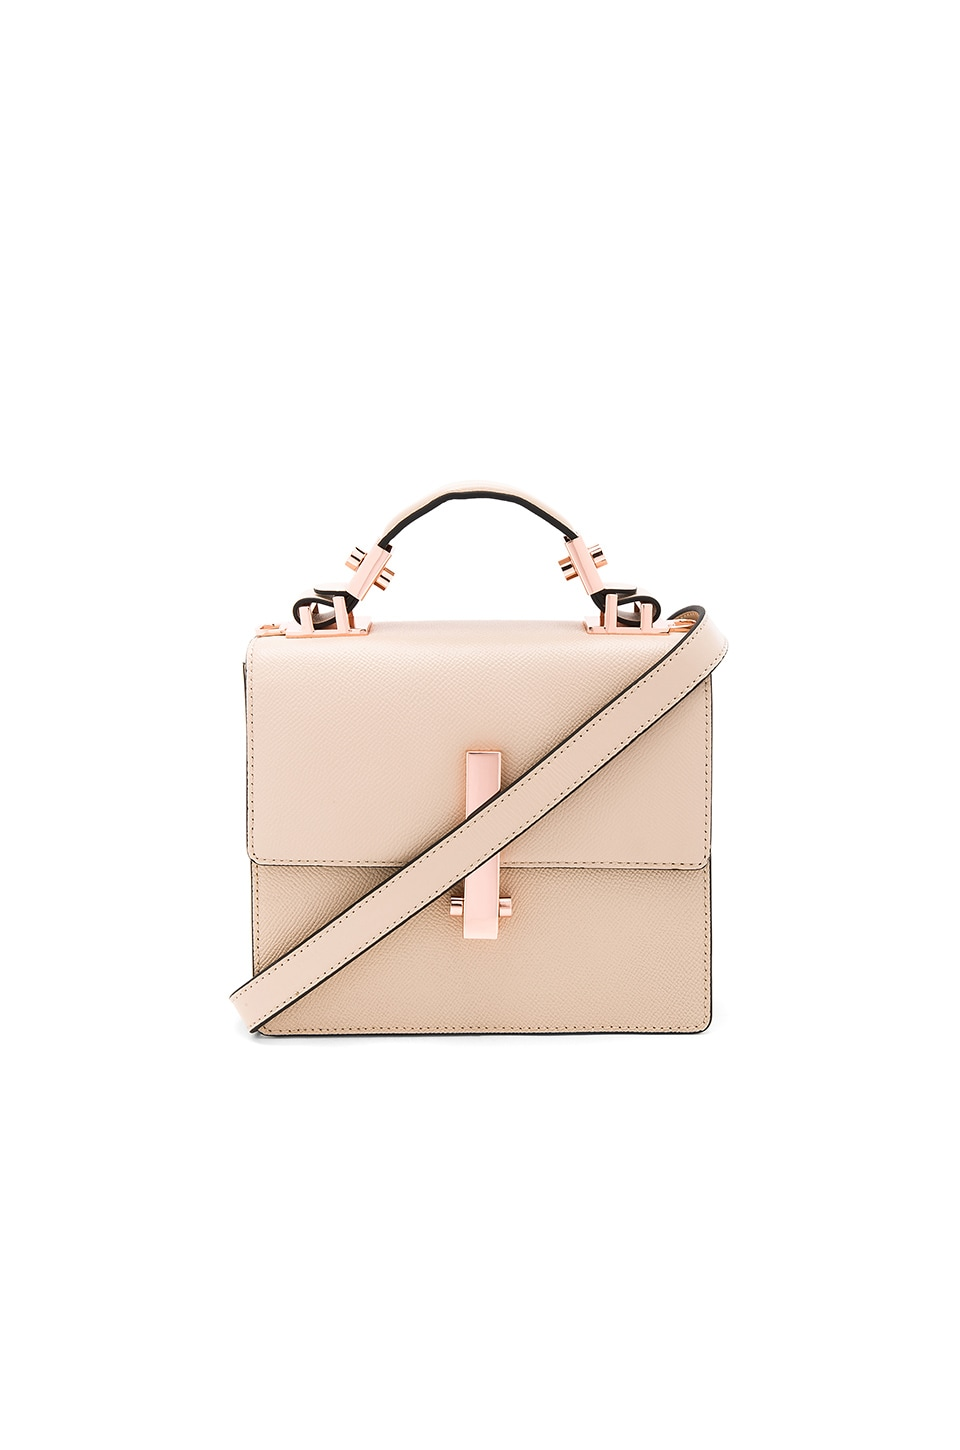 KENDALL + KYLIE Minato Mini Bag in Cream Tan